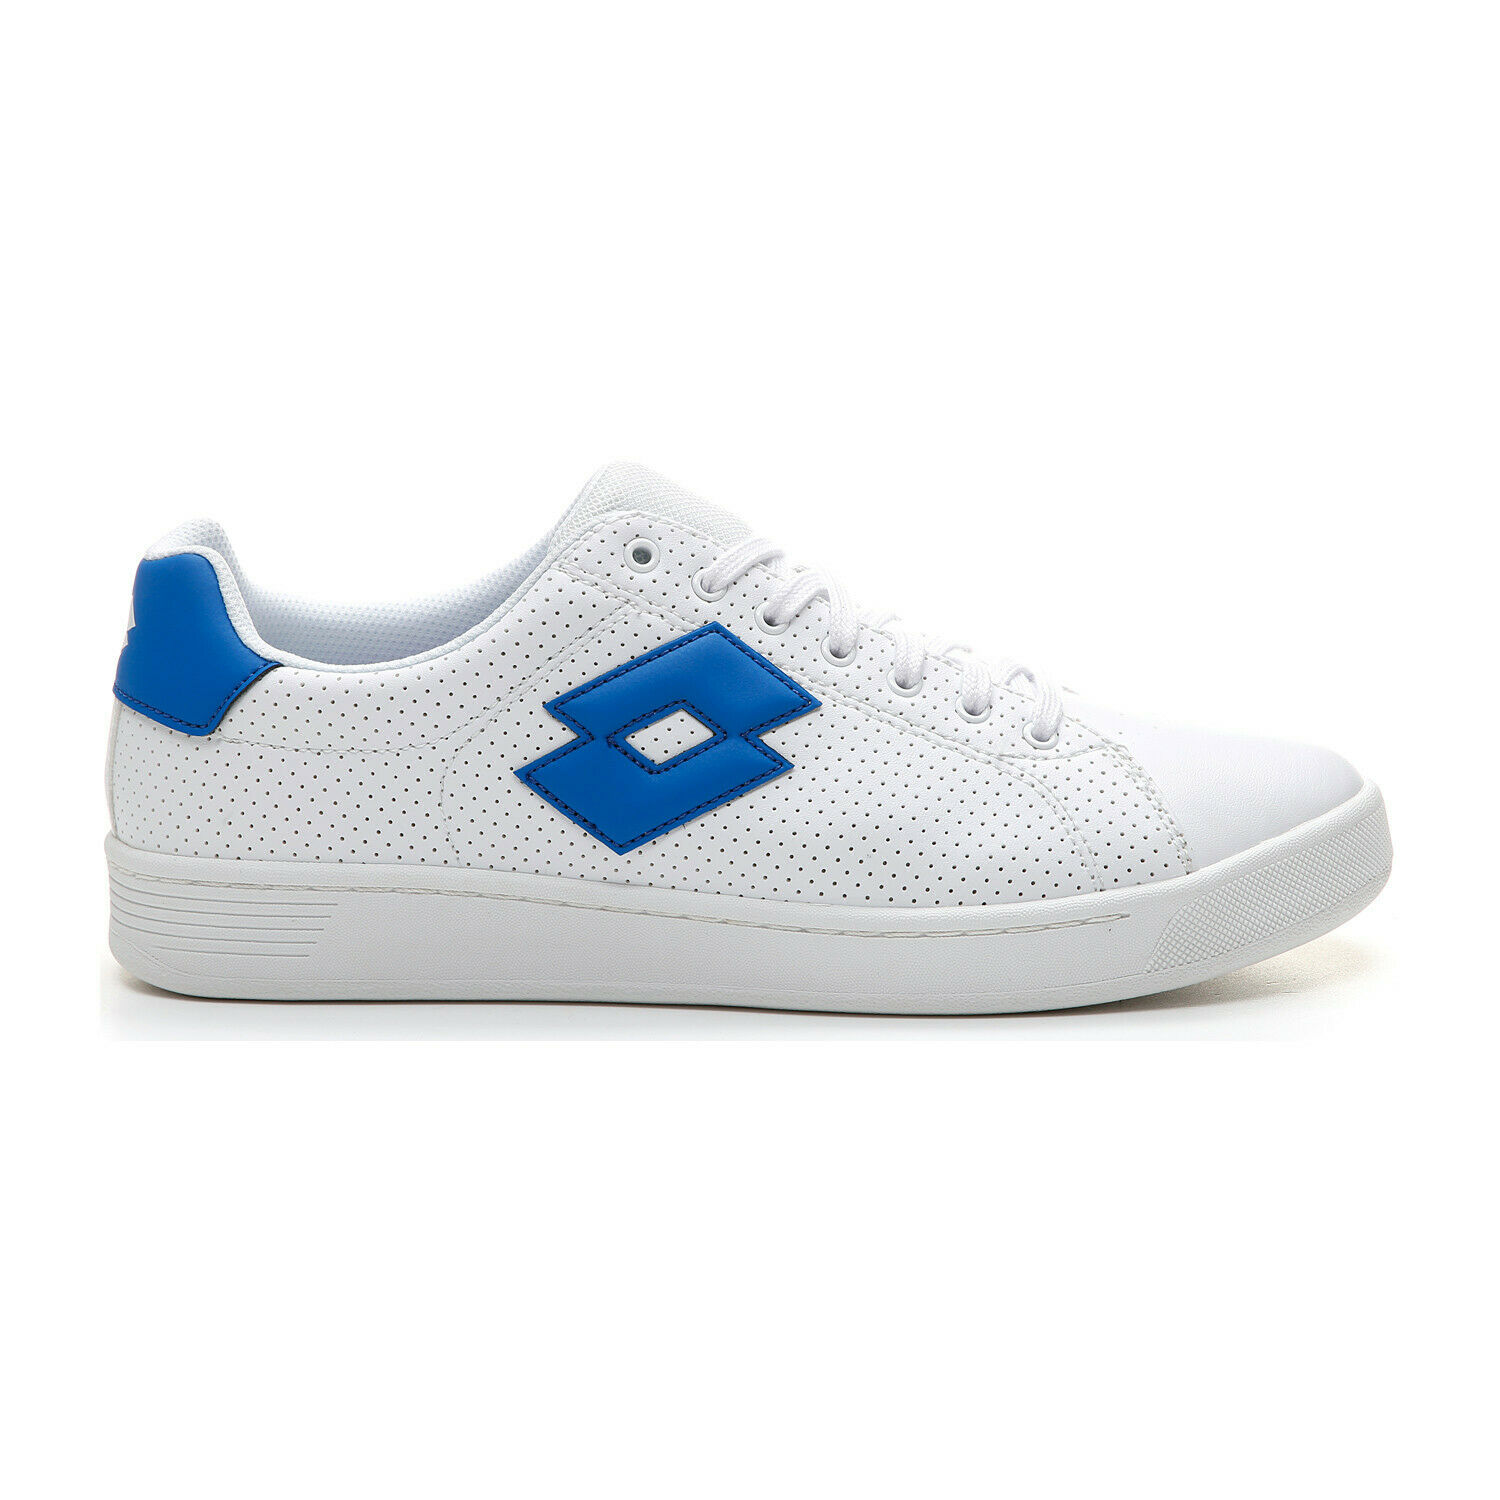 shoes Lot 210666-1je White bluee Mens Sneakers Low Fashion